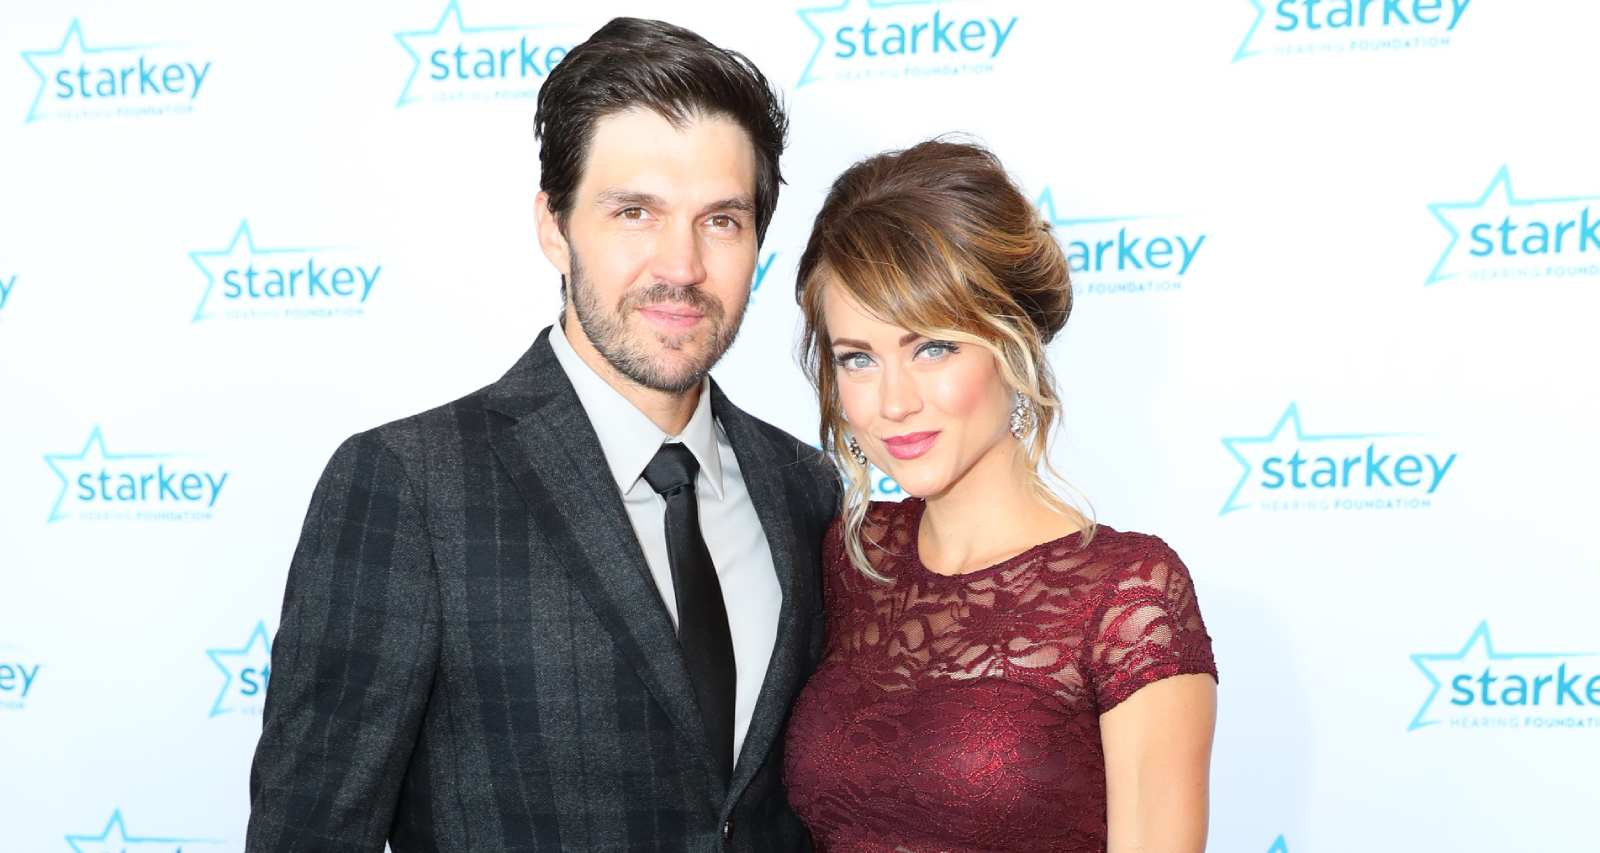 Who is Barry Zito's Wife? Amber Seyer Wiki, Age, Family, Parents, Kids and Facts About The Former Model